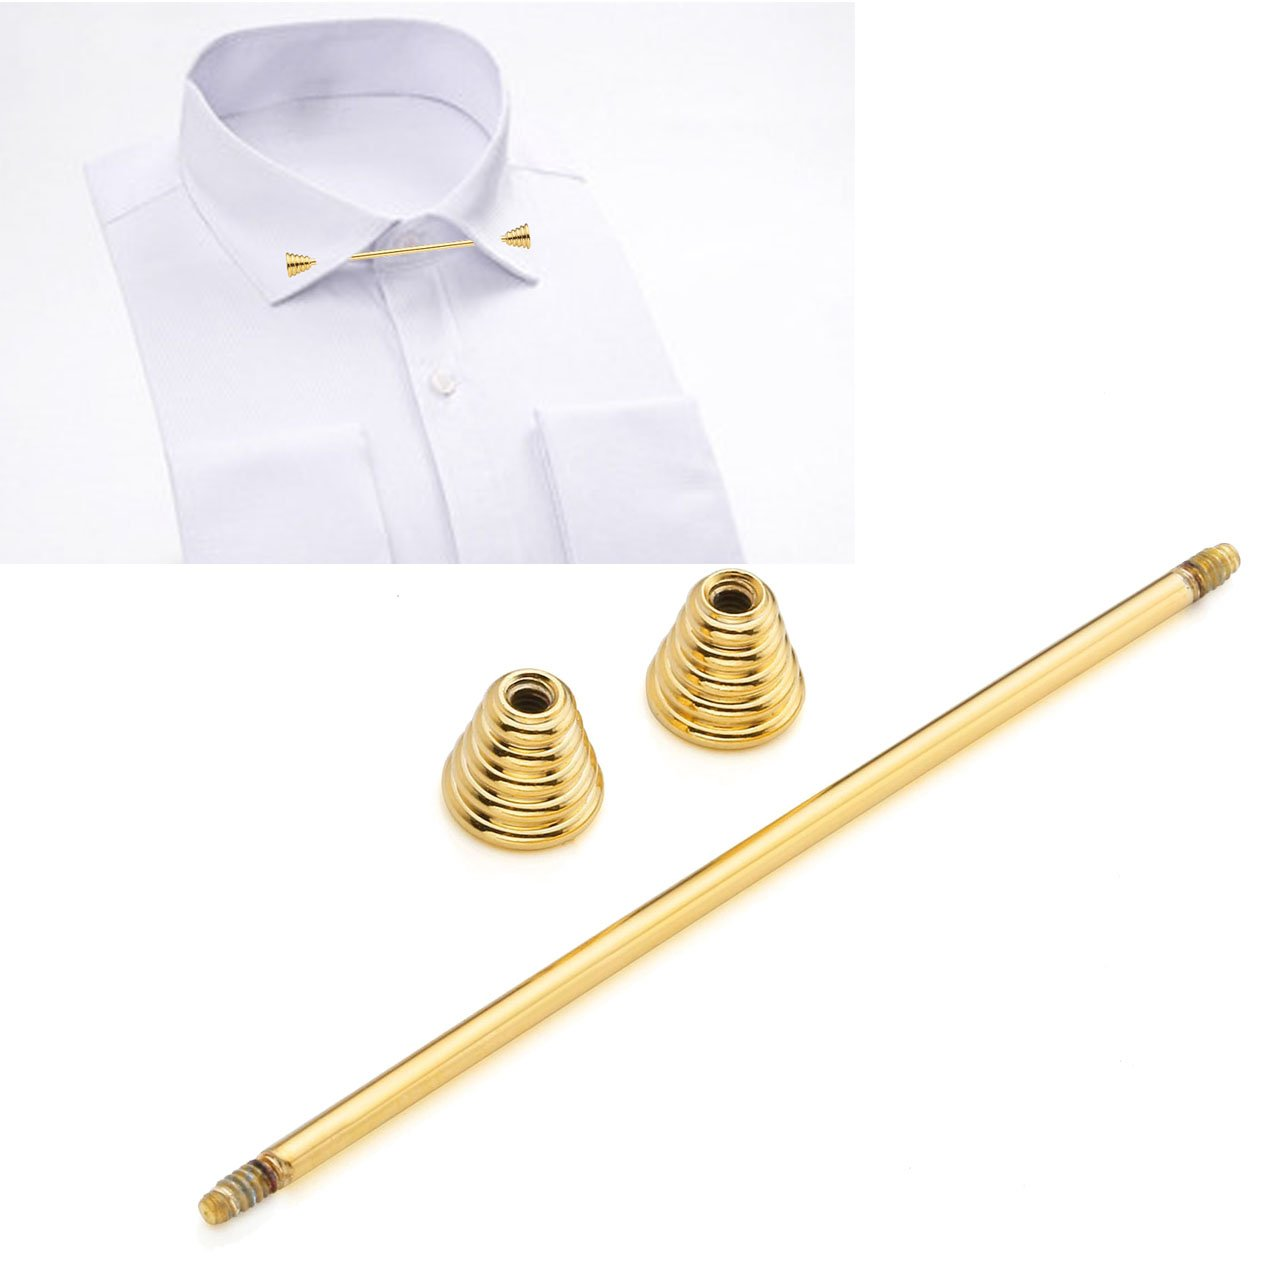 PiercingJ 2-4 pcs Mens Silvery Golden Plated Tone Stainless Steel Shirt Collar Tie Pin Stud Barbell Bar Clip Clasp Brooch by PiercingJ (Image #5)